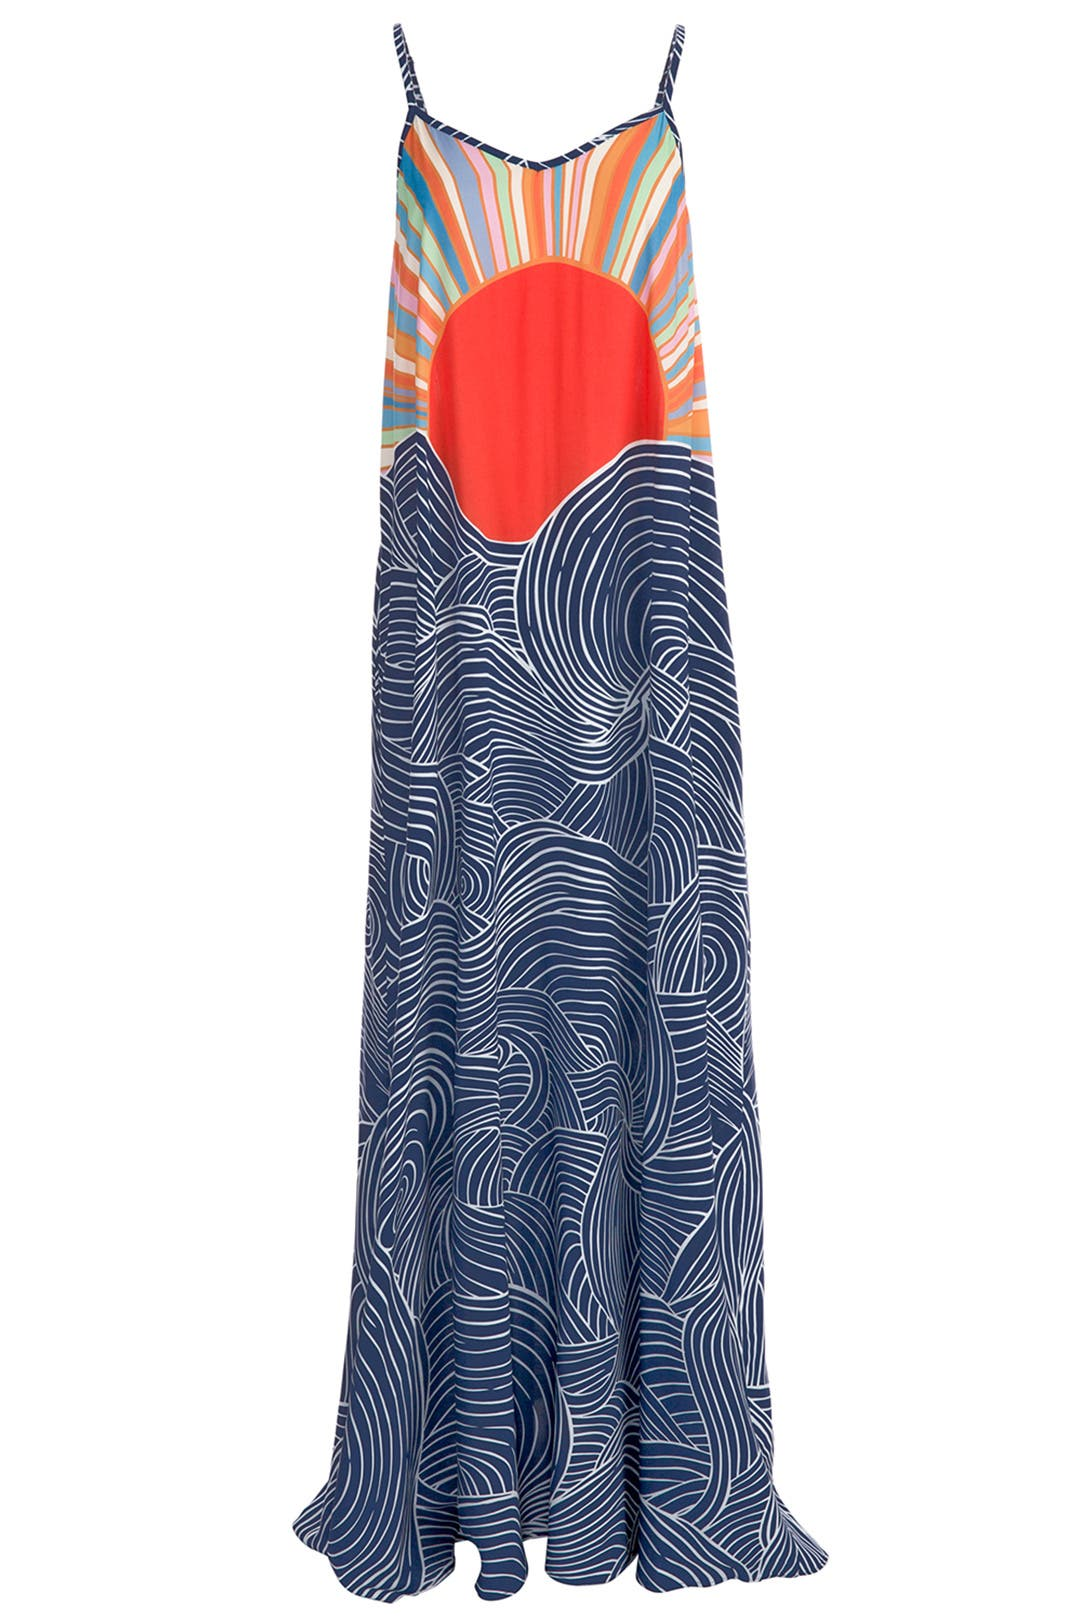 Misun Maxi Dress by Mara Hoffman for $55 - $70 | Rent the Runway